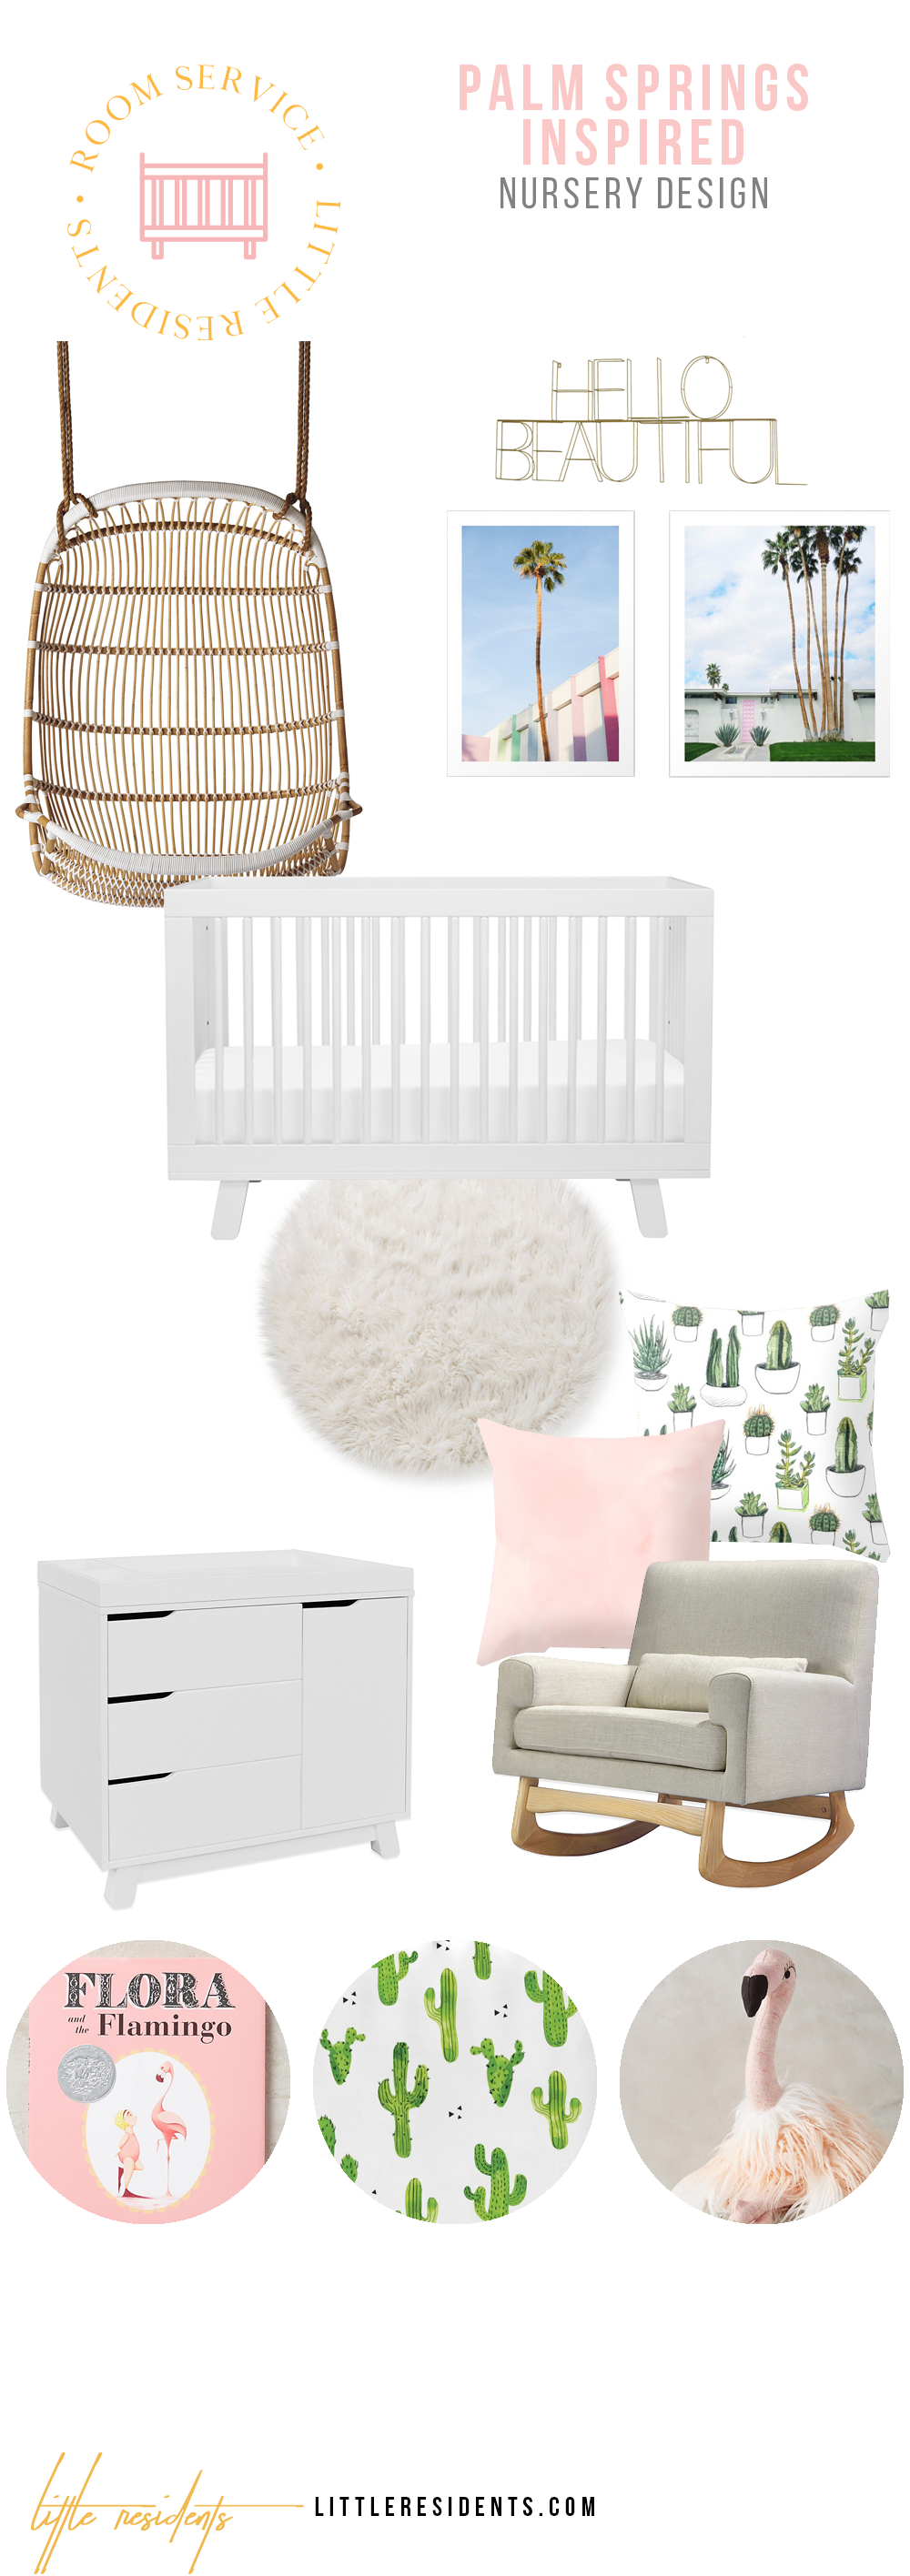 Palm Springs Inspired Nursery Interior Design by Little Residents